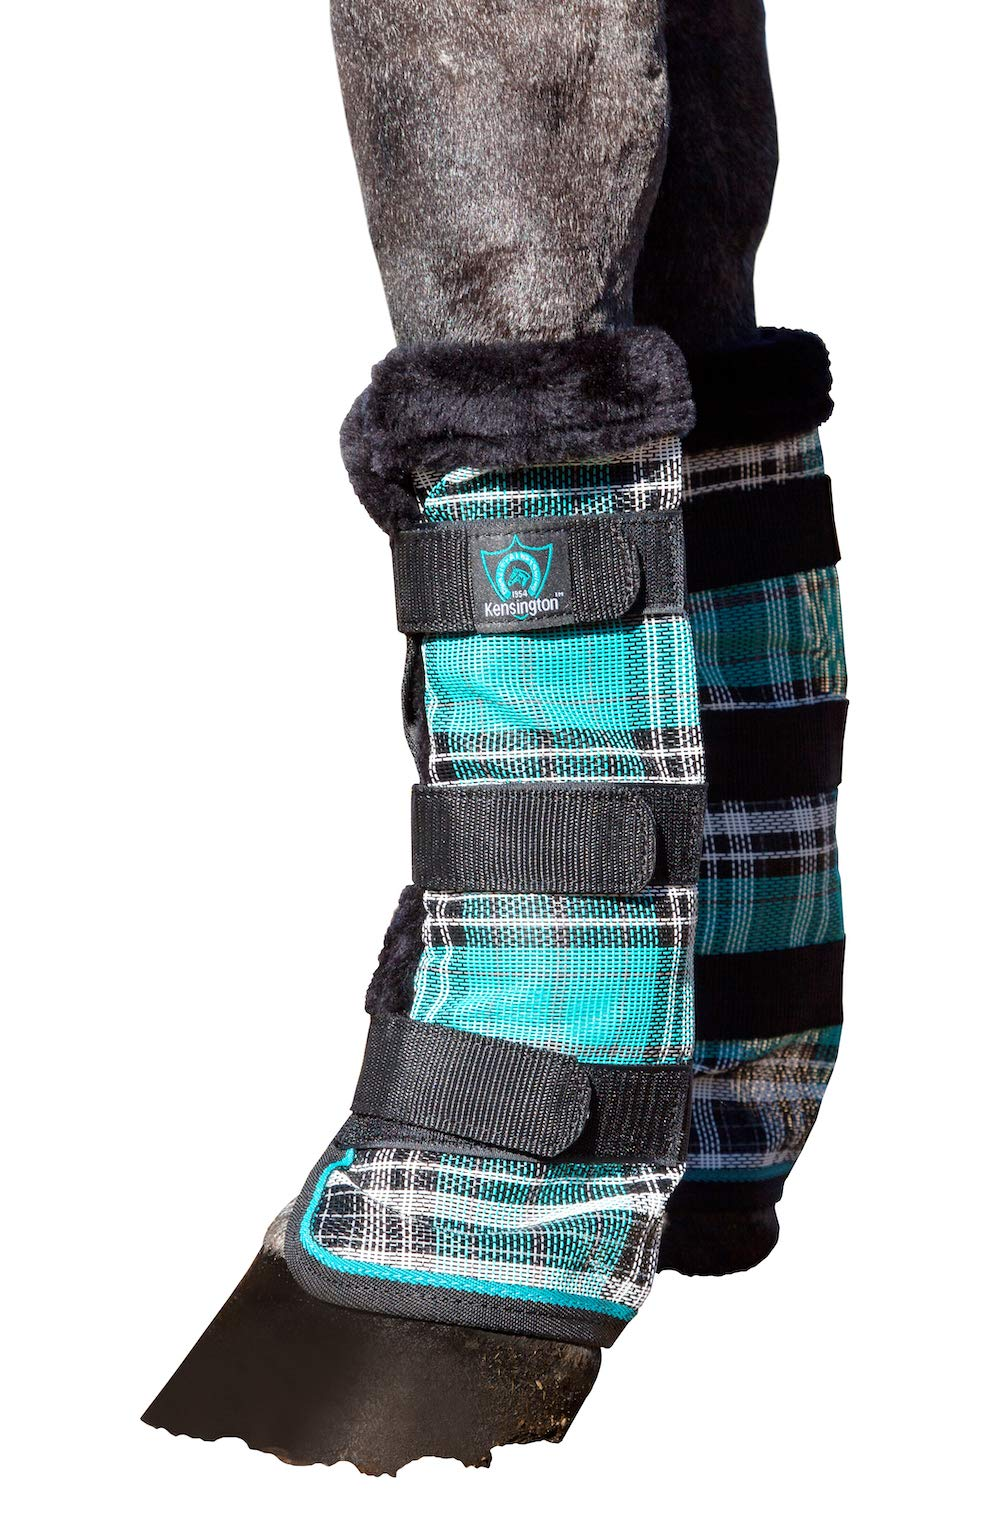 Kensington Natural Horse Fly Boots - Fleece Trimmed - Stay-Up Technology - Protection from Insect Bites and UV Rays - Sold in Pairs (2 Boots) - Large - Black Ice by Kensington Protective Products